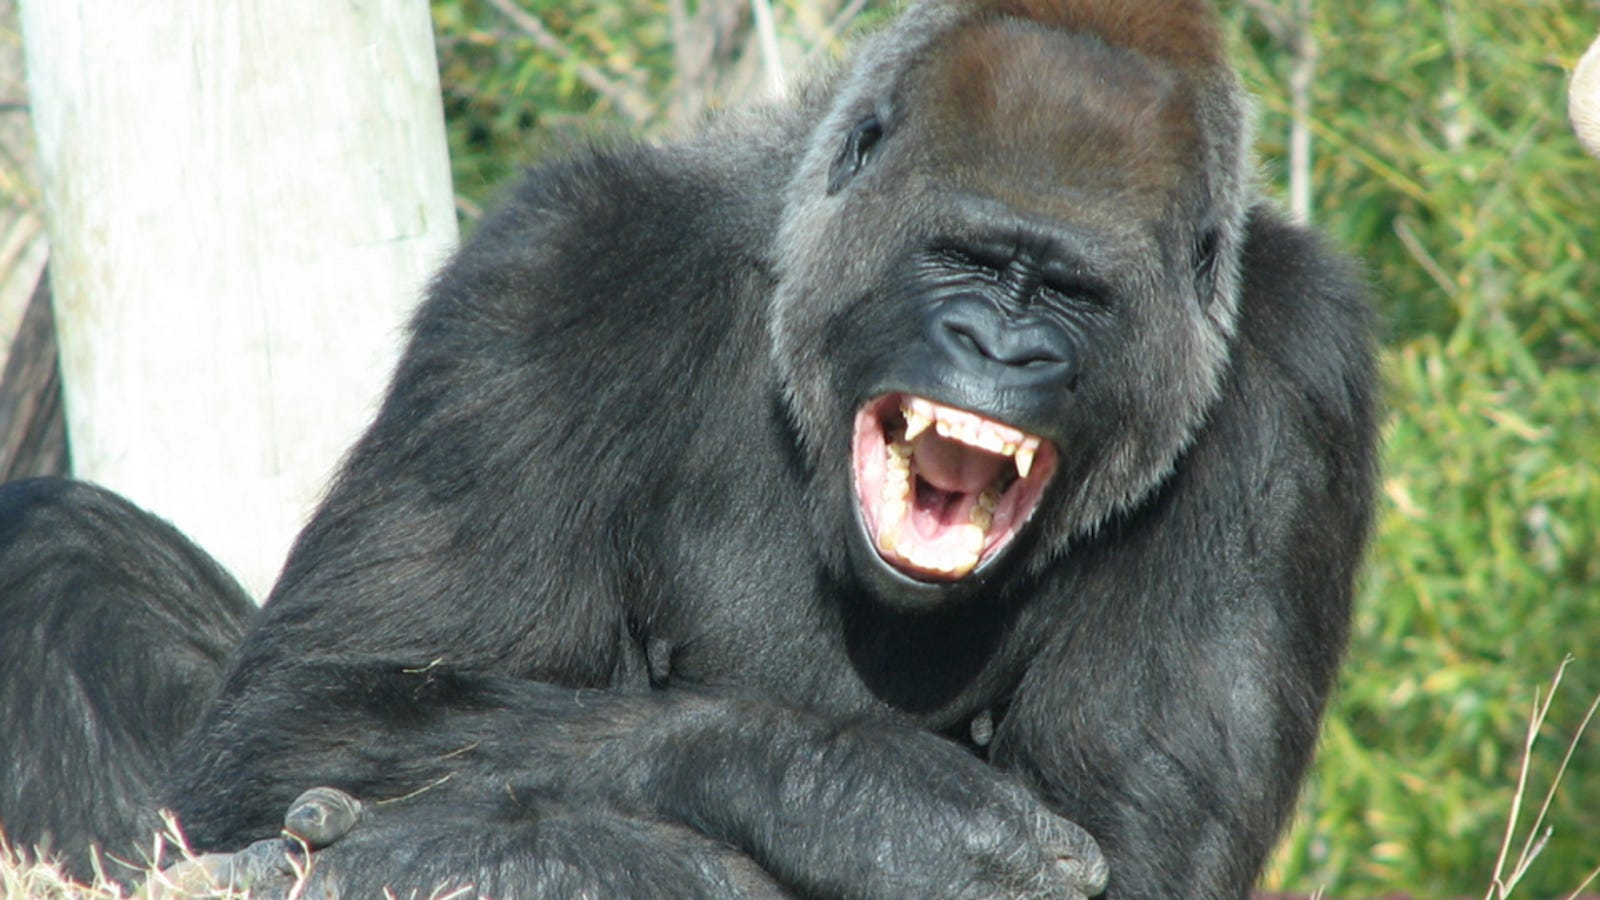 Grinning gorillas could help explain the origins of human ...